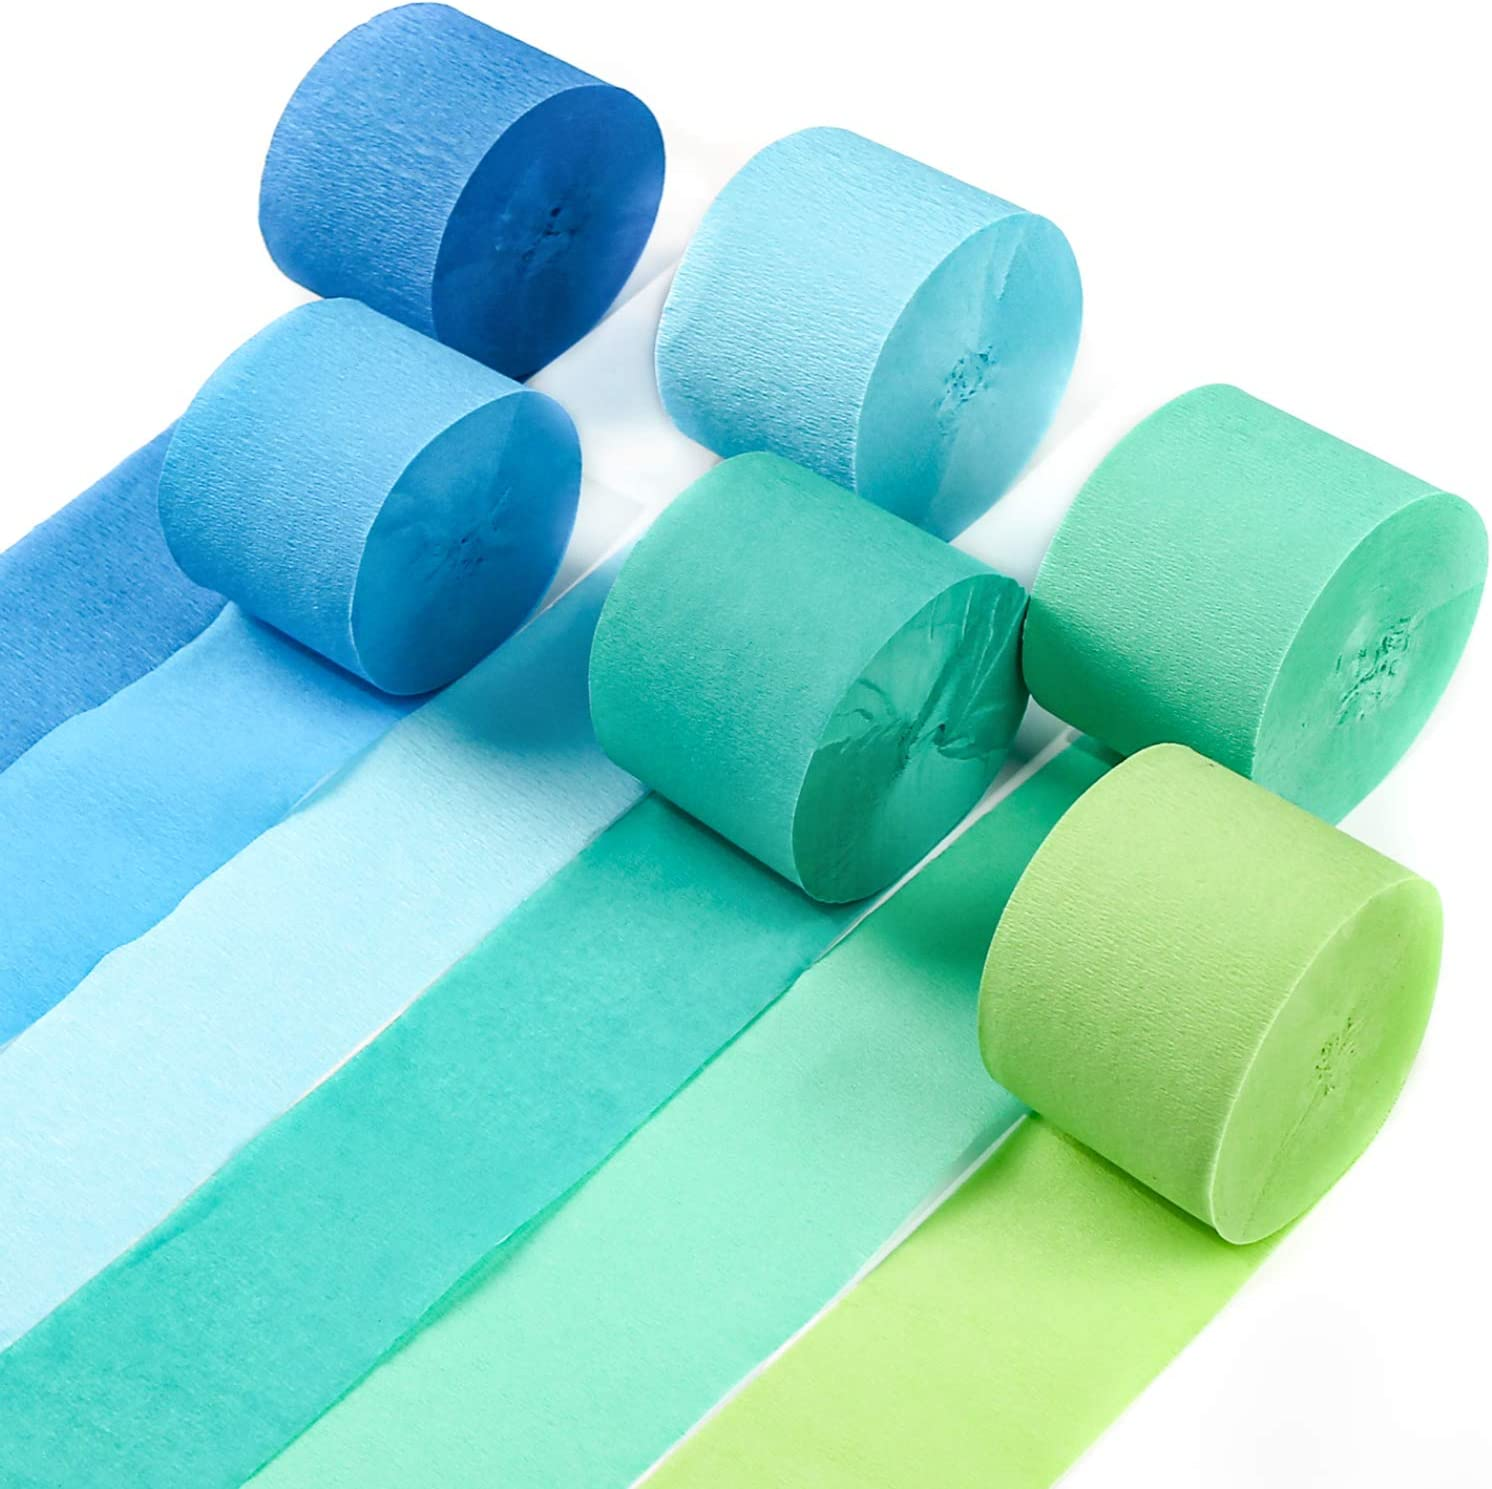 PartyWoo Crepe New York Mall Many popular brands Paper Streamers 6 Green Party 82ft pcs